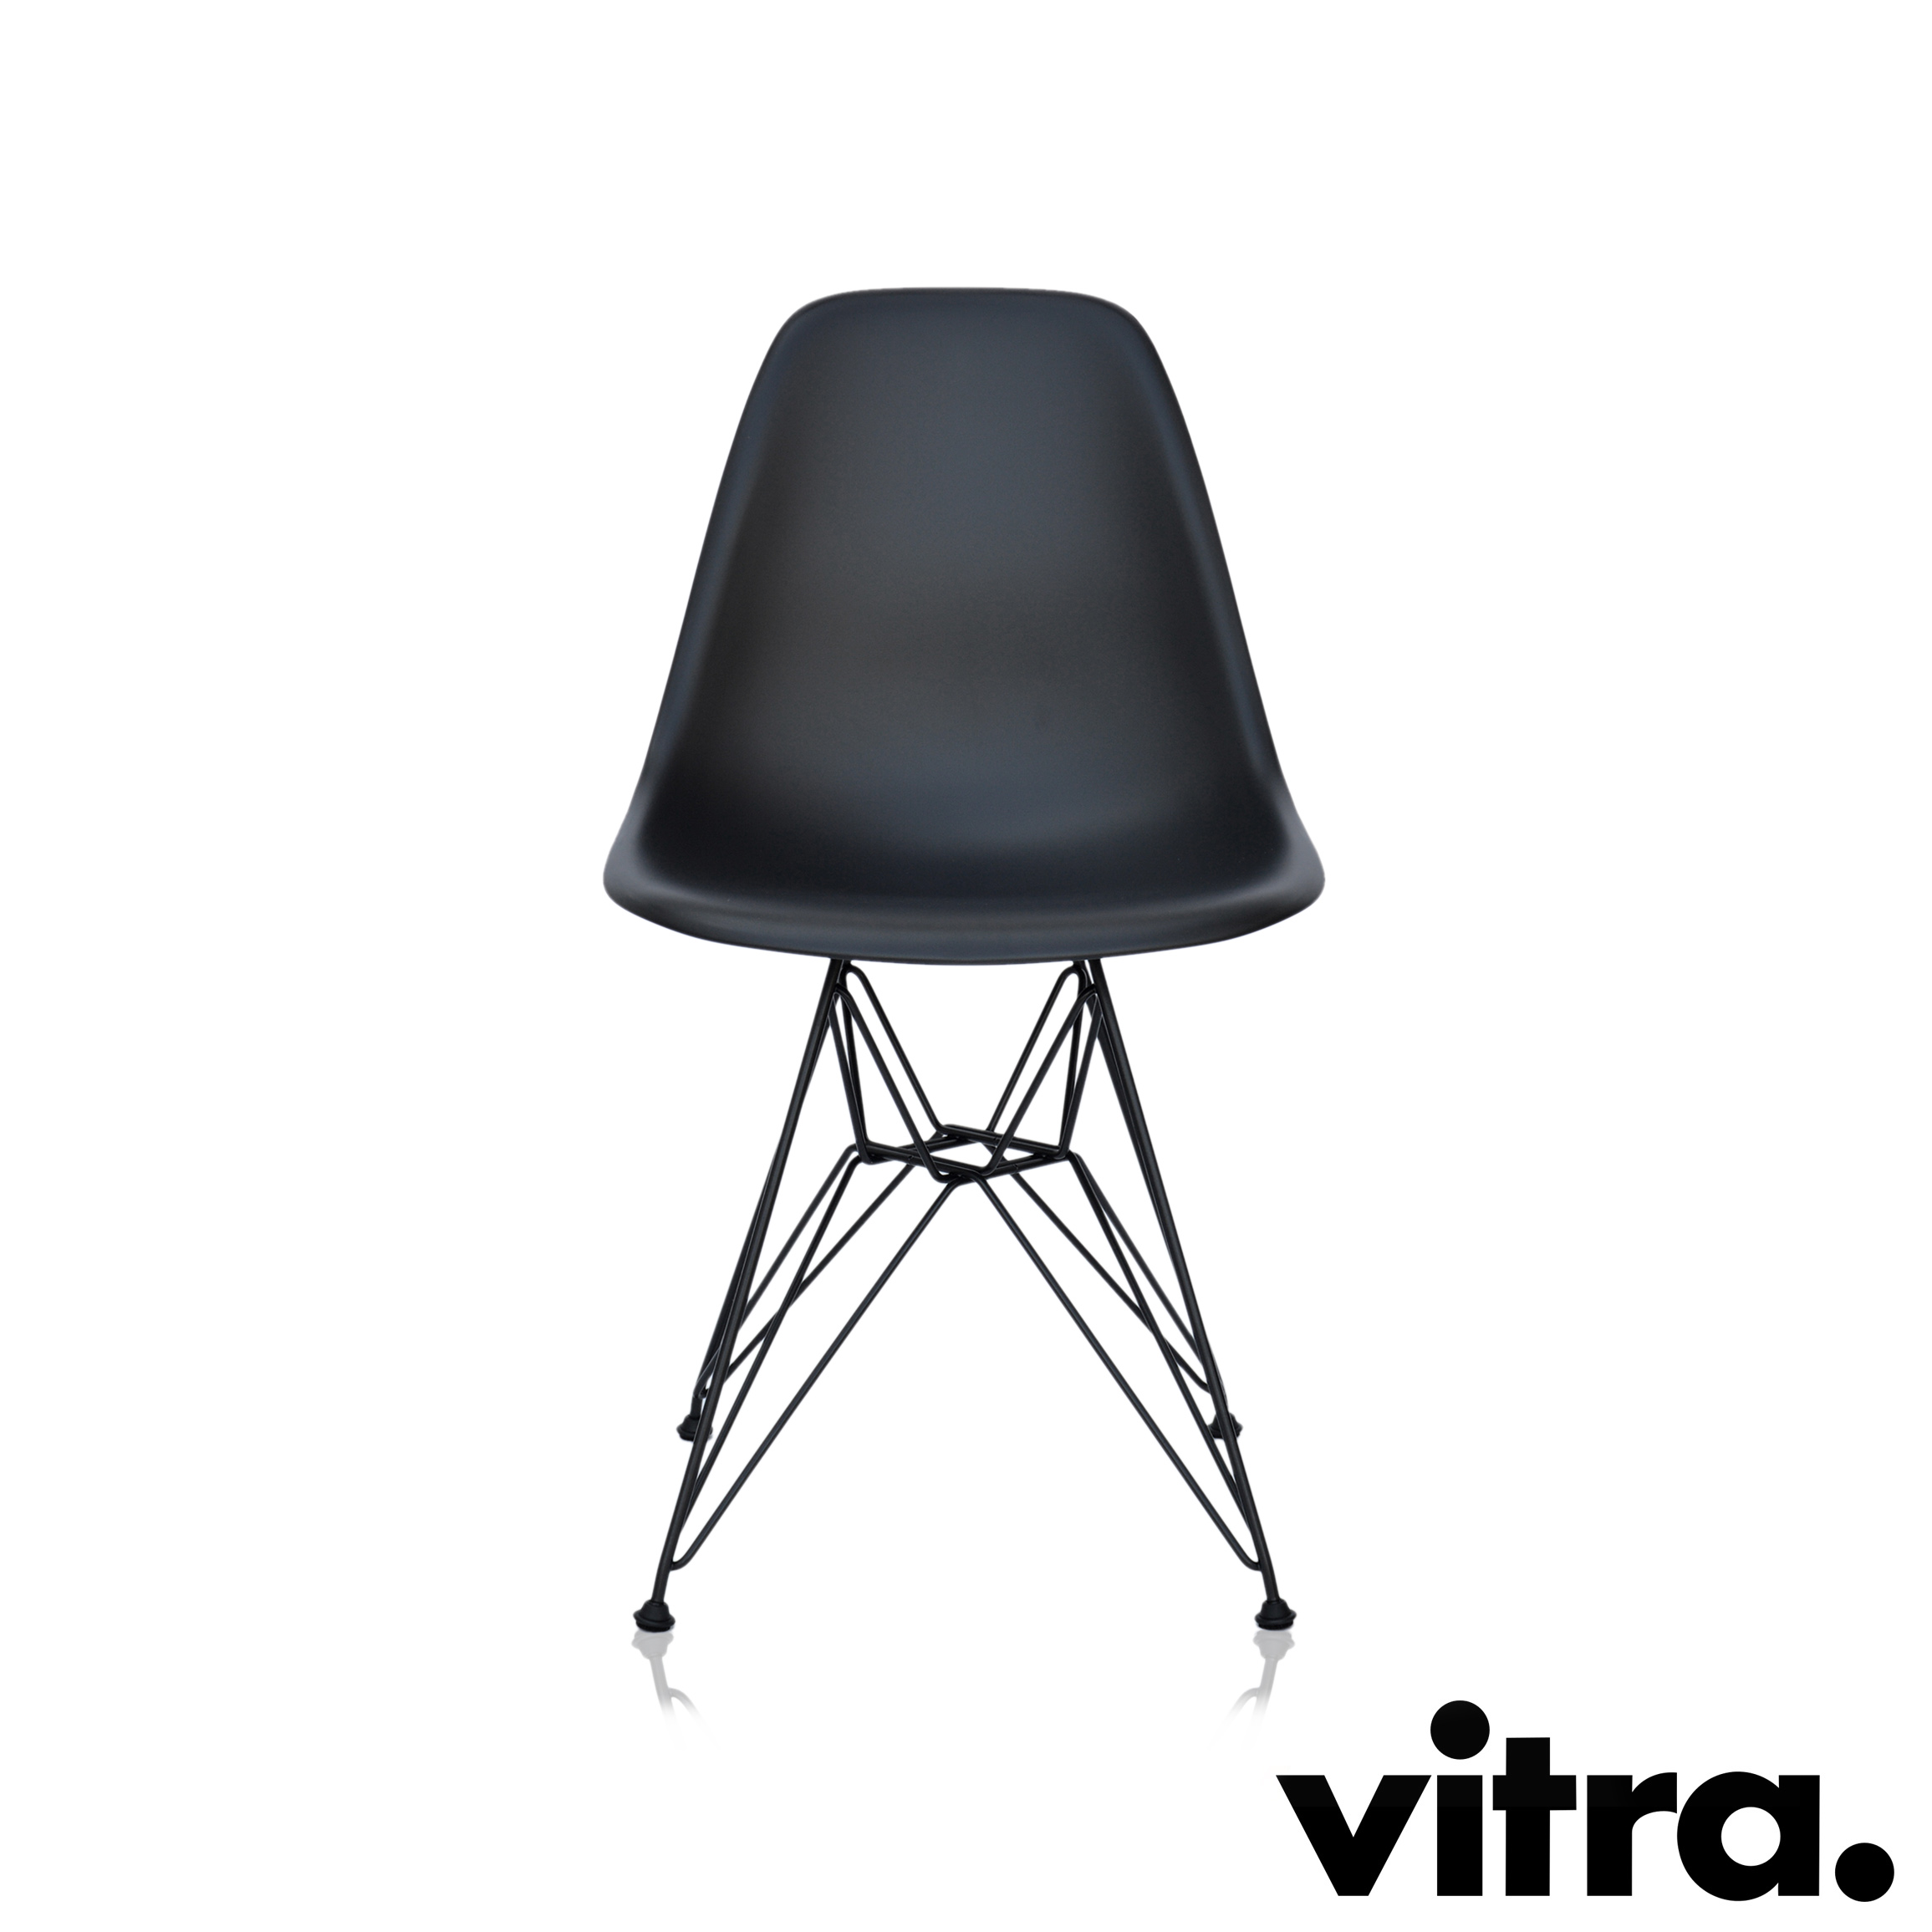 vitra eames plastic side chair dsr kaufen. Black Bedroom Furniture Sets. Home Design Ideas